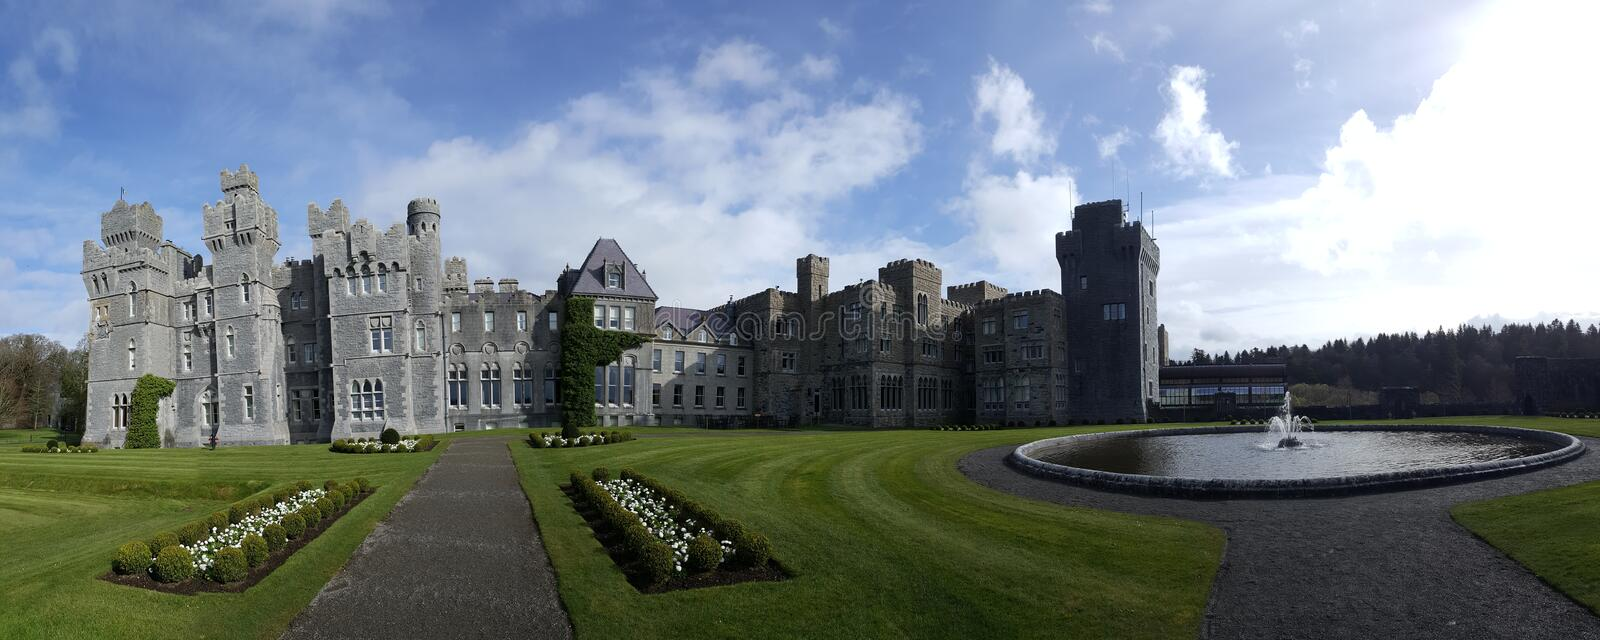 Afternoon at Ashford Castle near Galway Ireland. I took this photo in 2017 during our second honeymoon to Ireland. The castle combines several different styles royalty free stock images